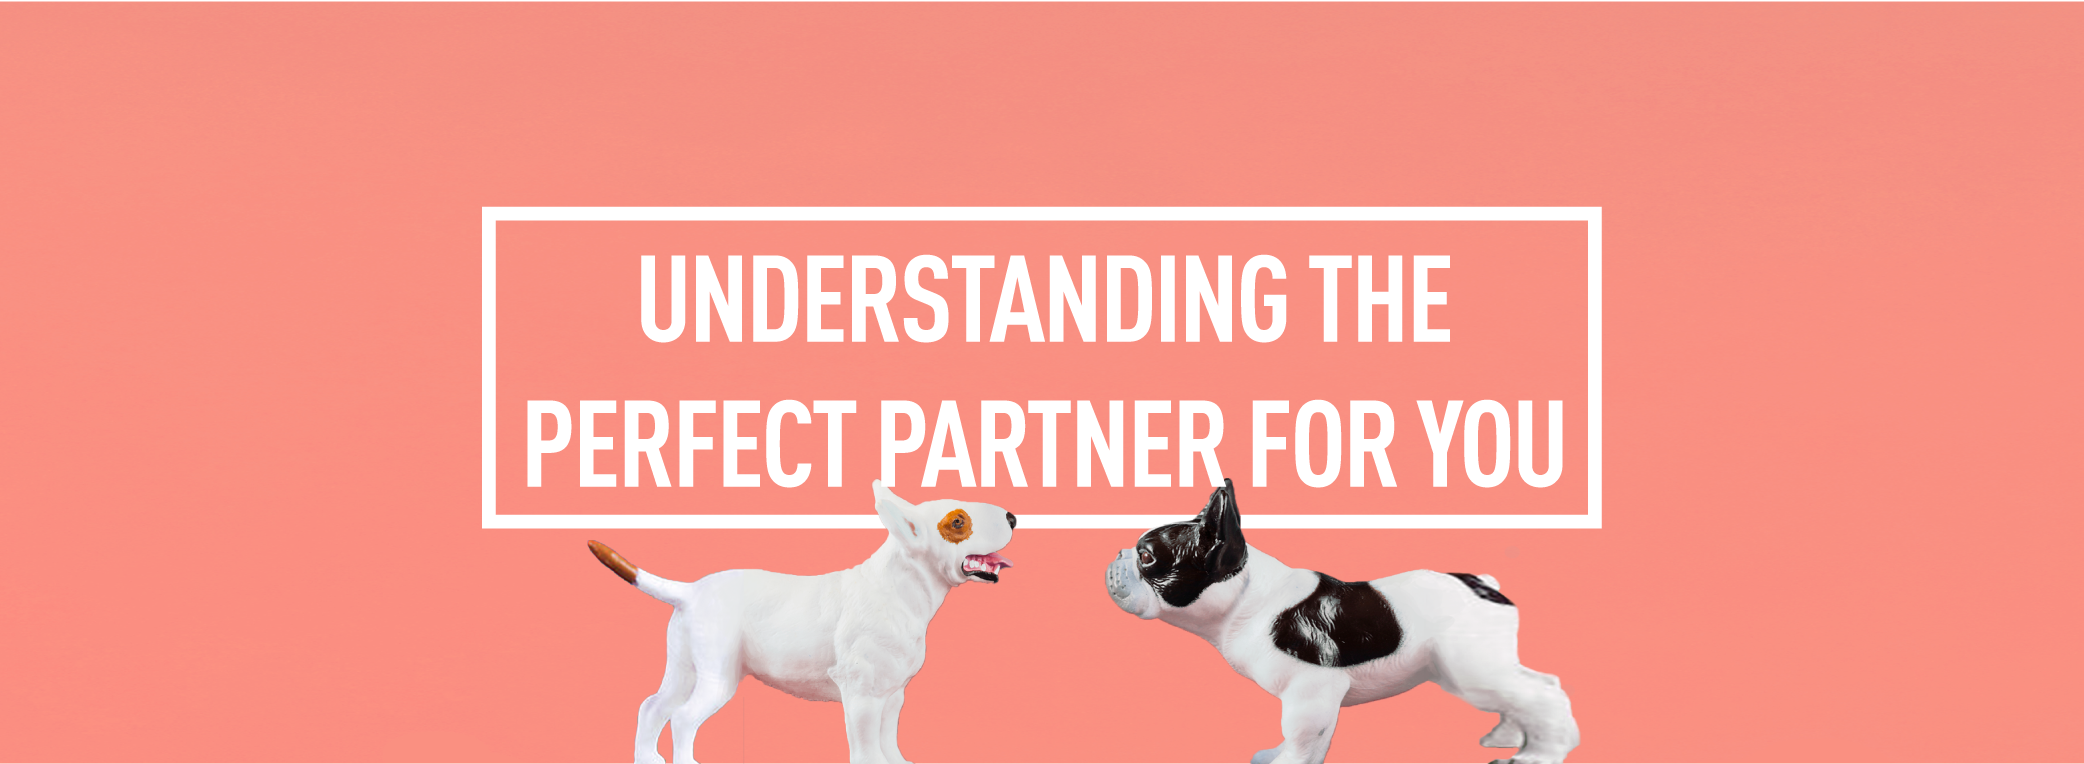 UNDERSTANDING THE PERFECT PARTNER FOR YOU_Webpage Header